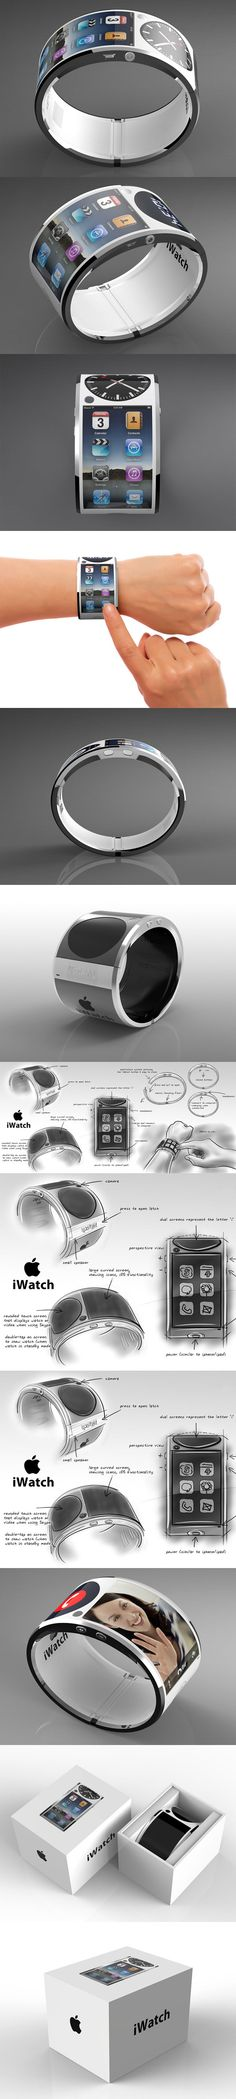 Love This iWatch! Concept by James Ivaldi #design #concept #geek #apple